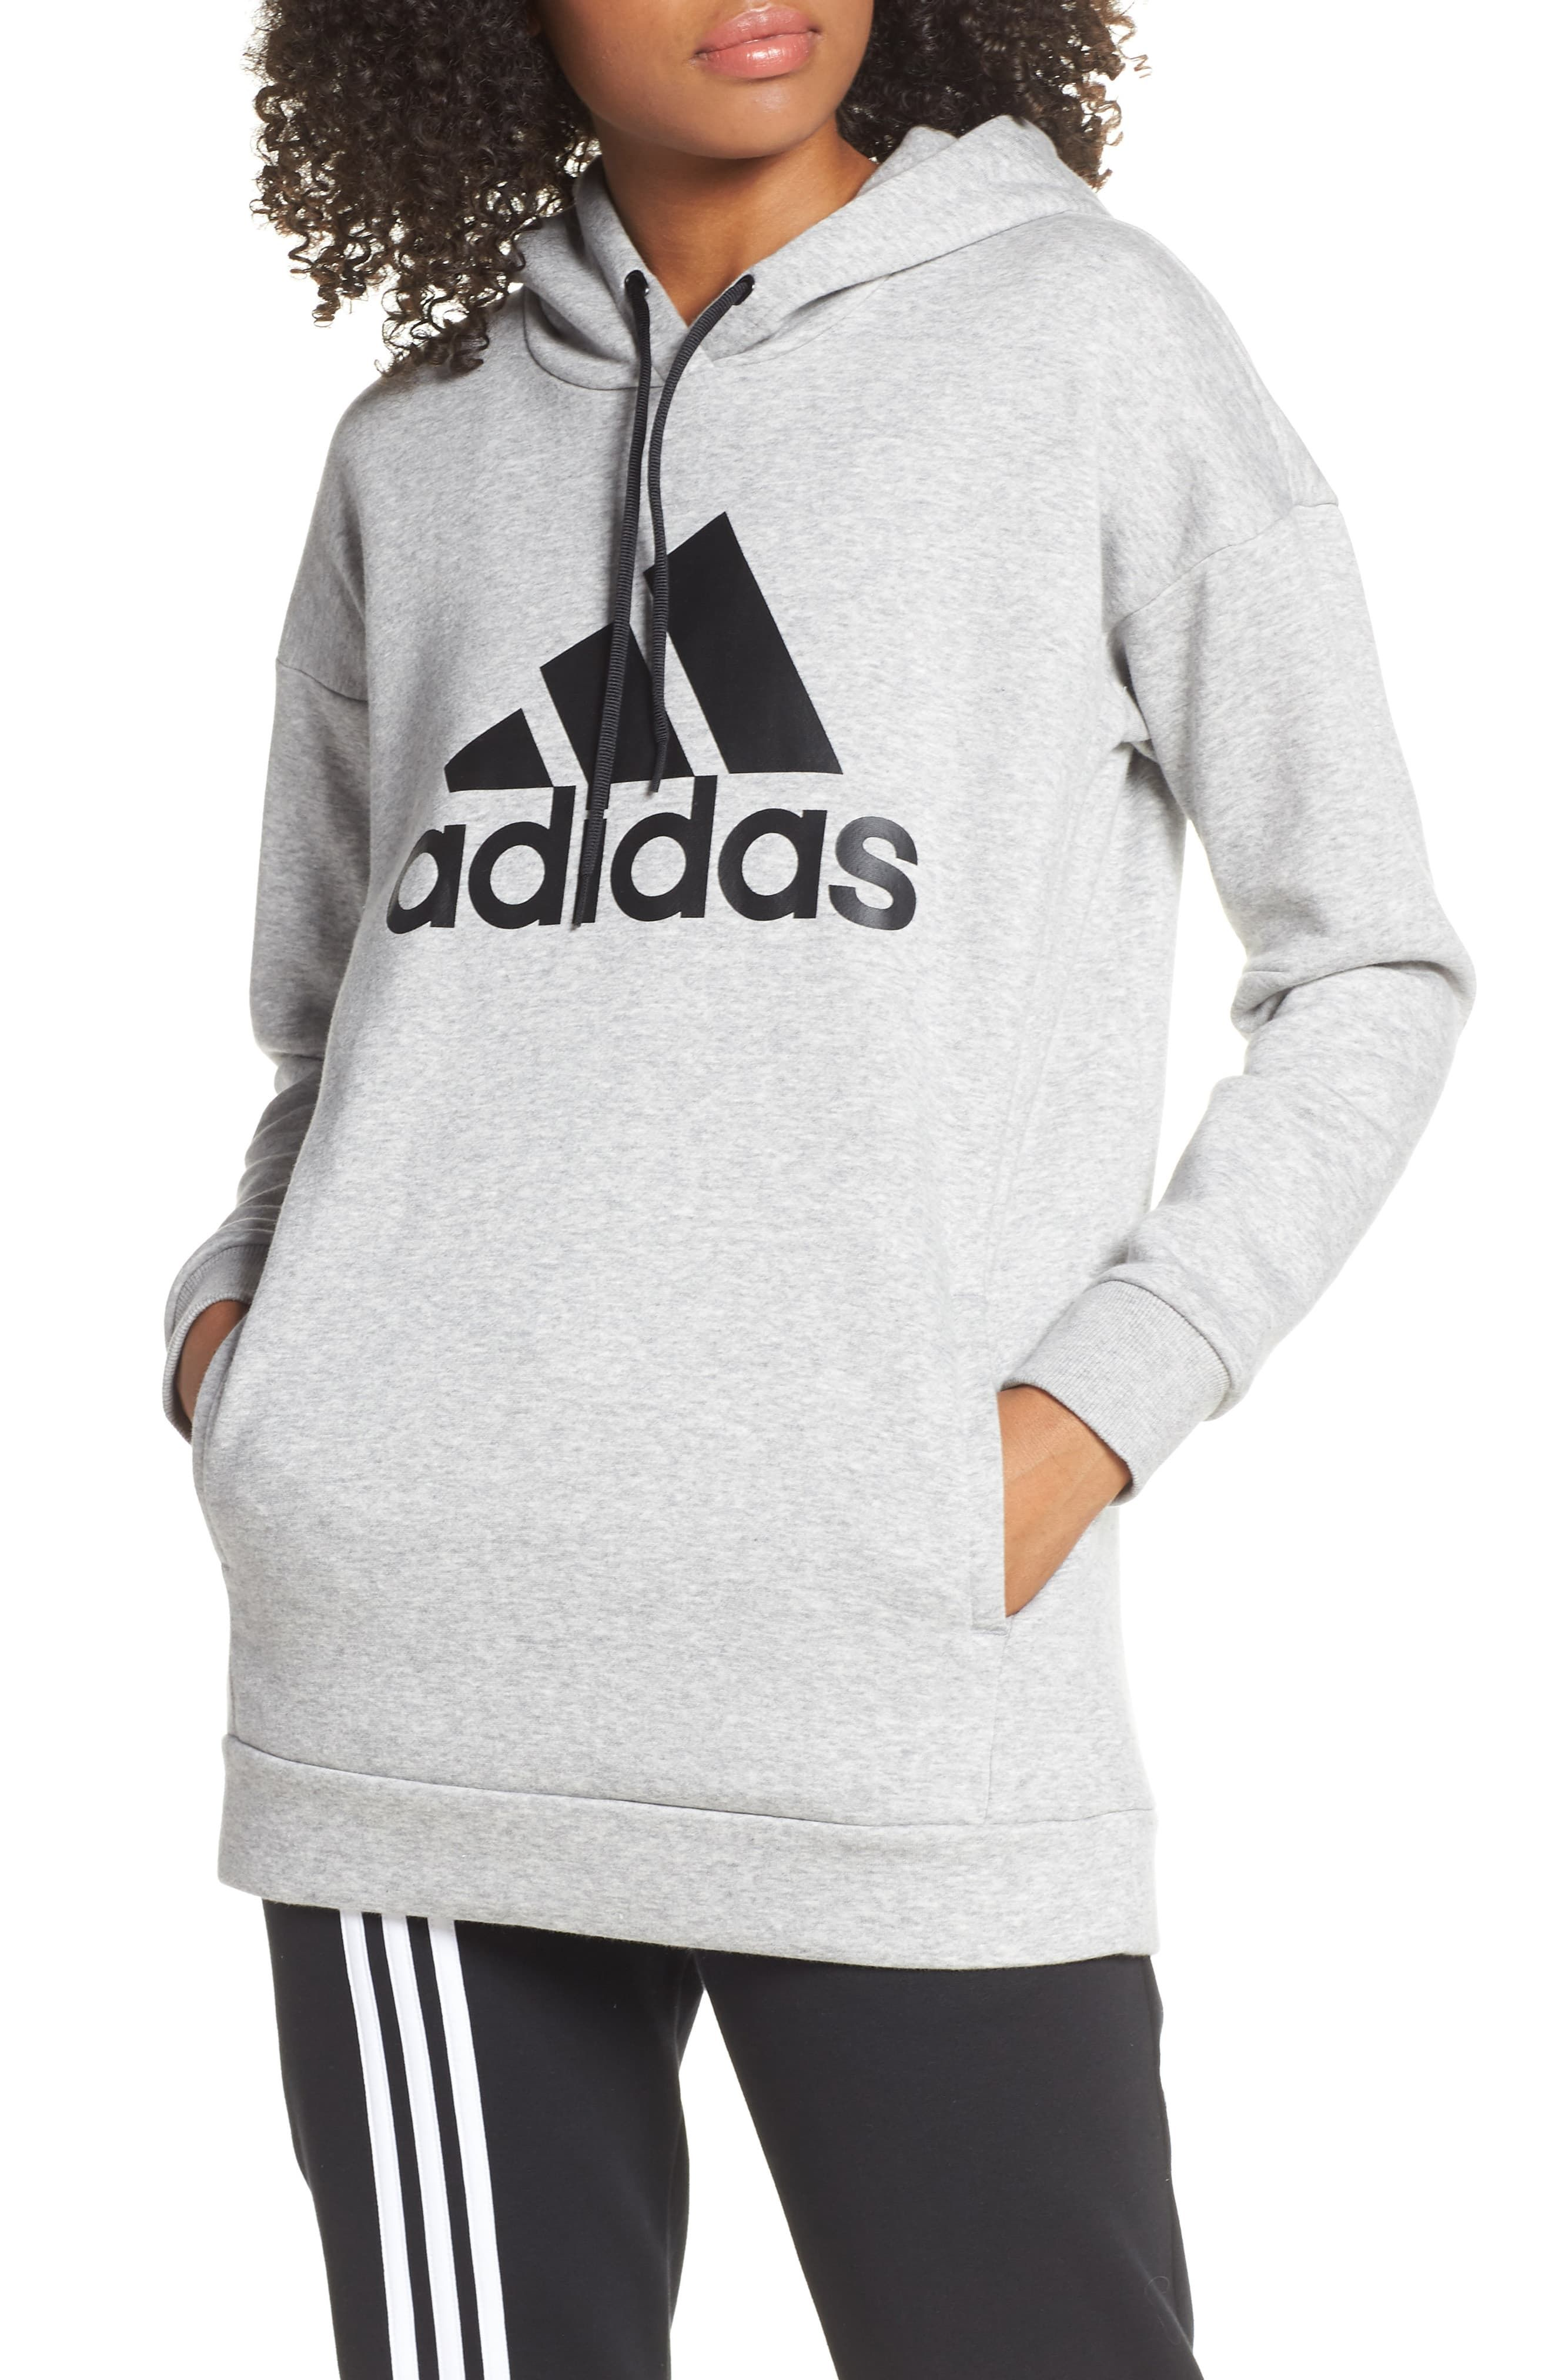 Pin By Ainul Yakin On Hngg In 2020 Hoodies Adidas Women Fashion Clothes Women [ 4048 x 2640 Pixel ]